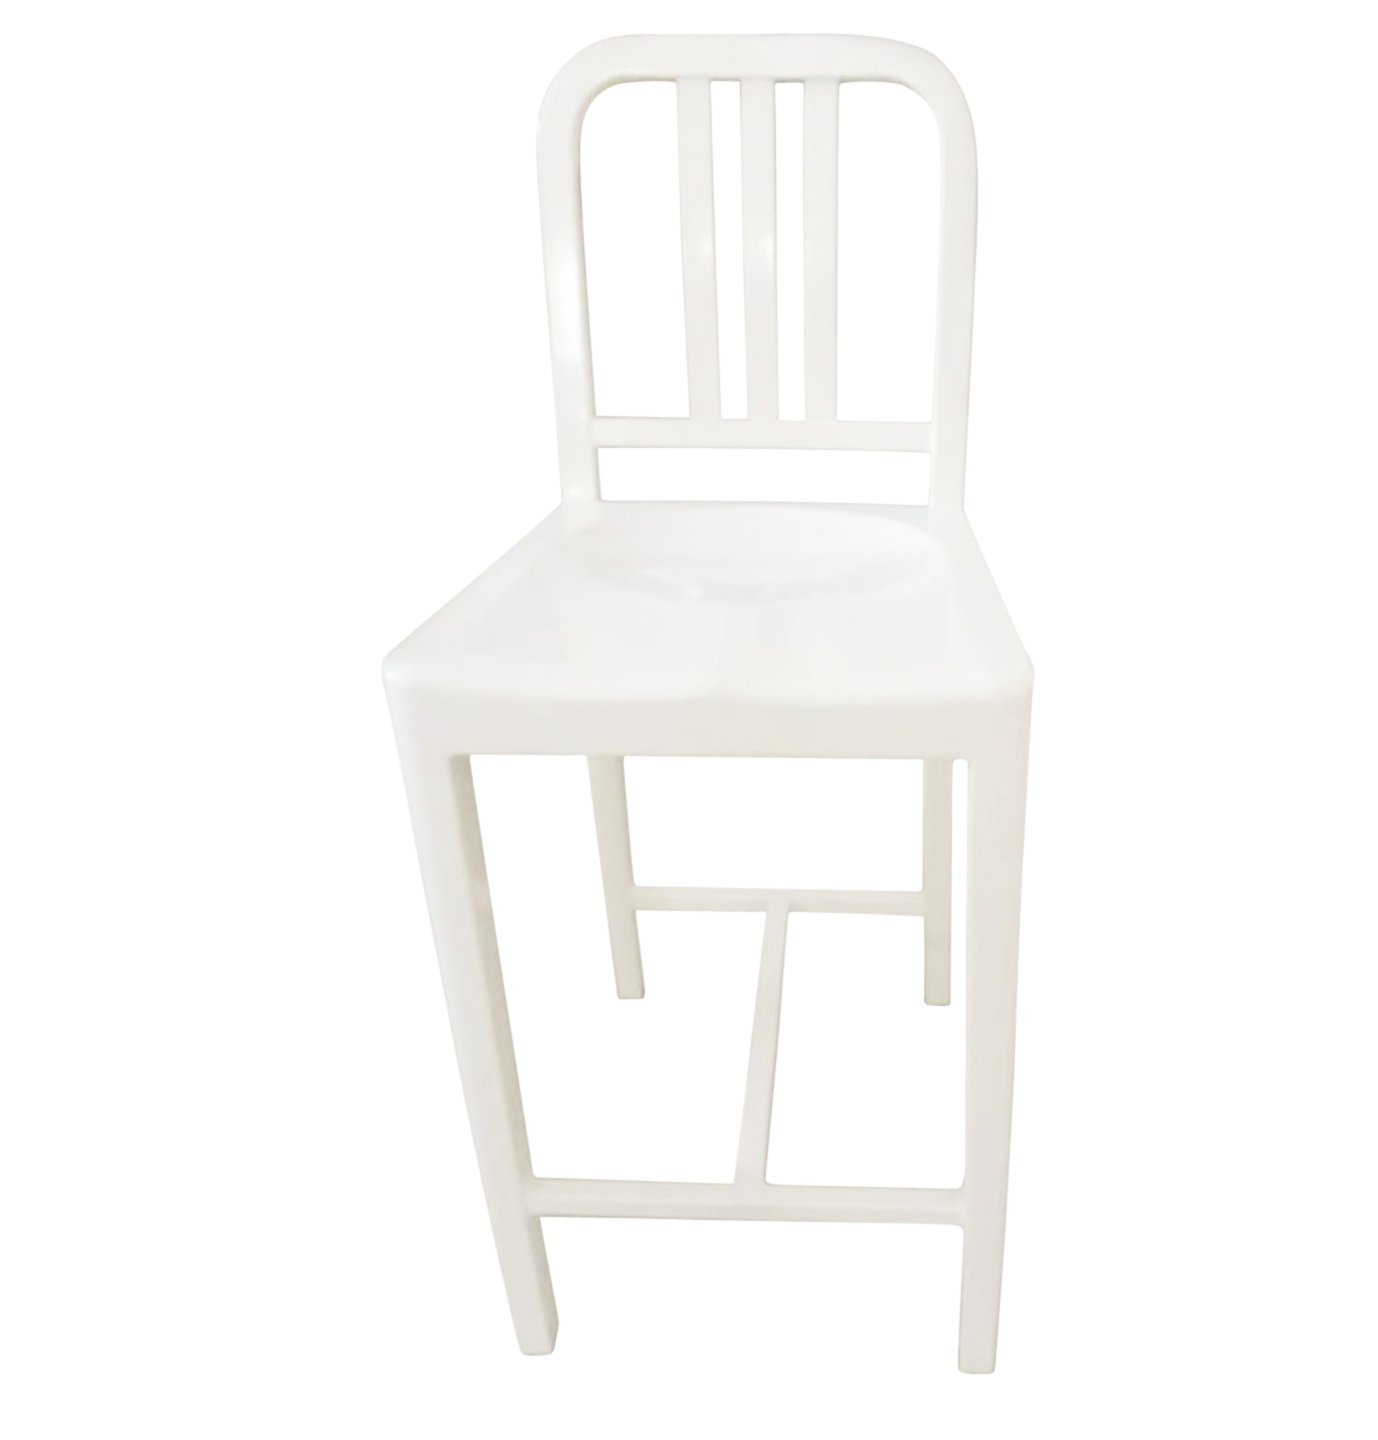 Oliver Counter Stool - Aluminium - White - GFURN